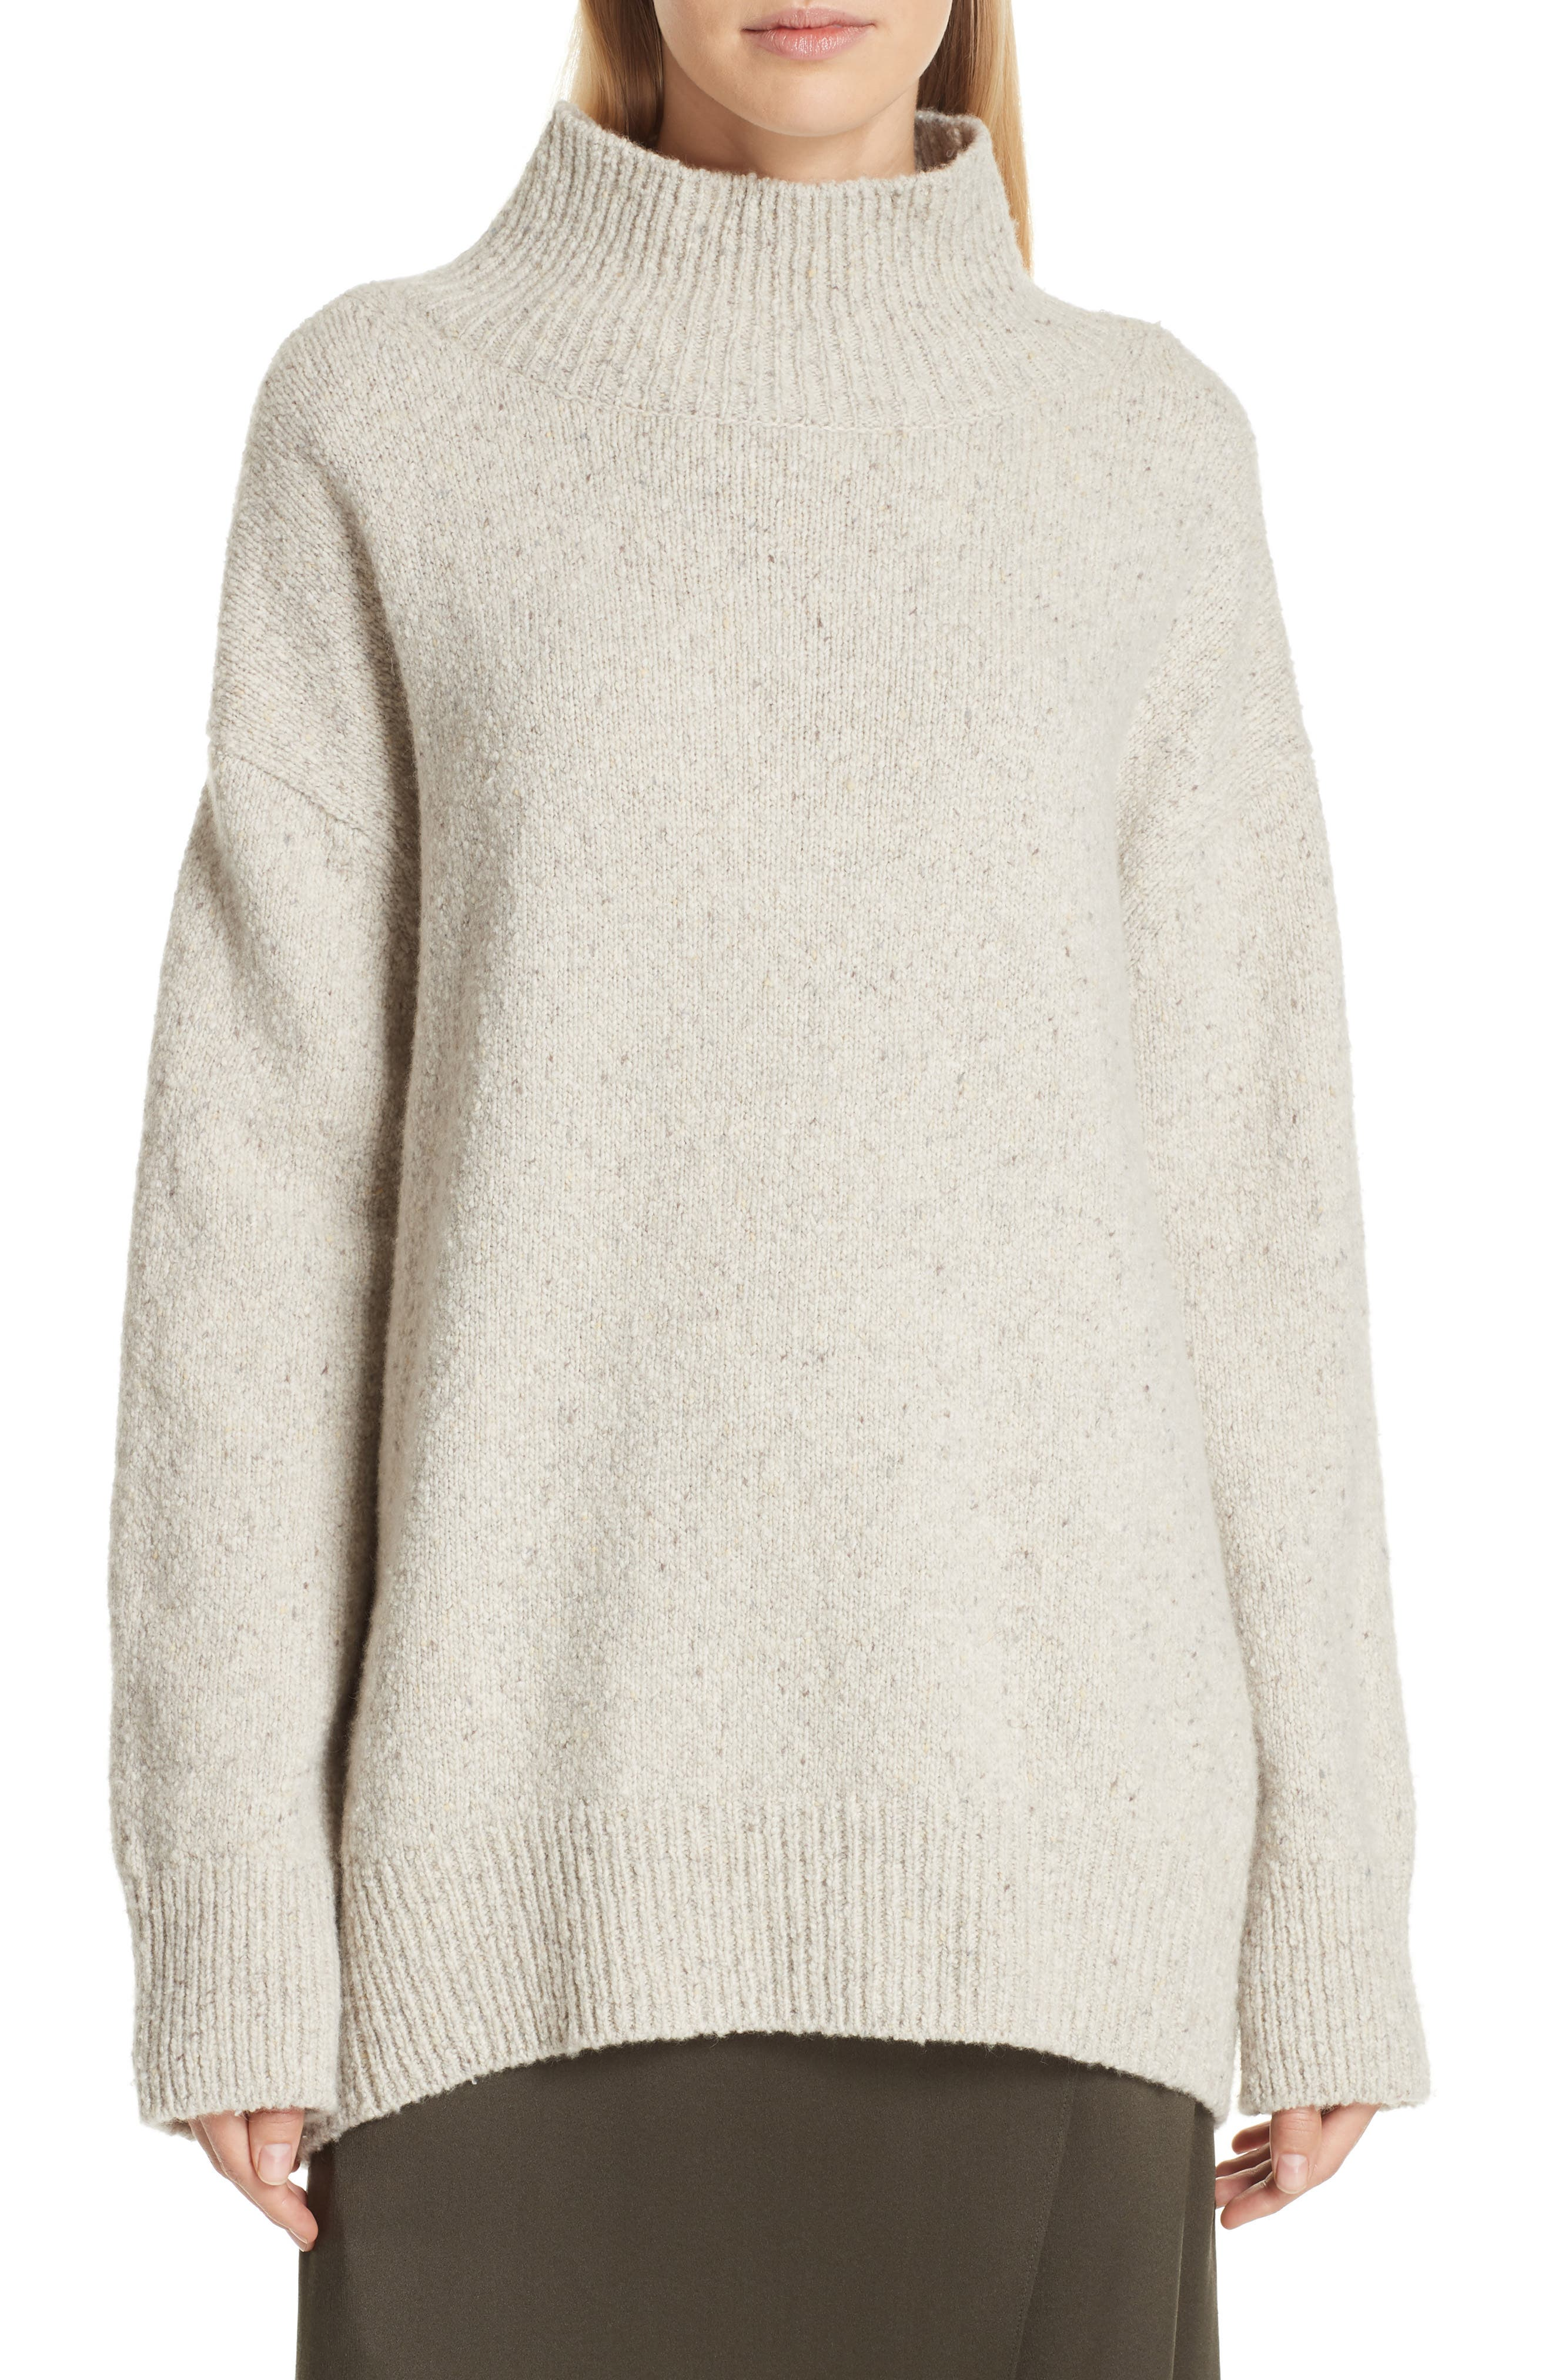 Oversize Cashmere Sweater,                             Main thumbnail 1, color,                             BUTTERMILK